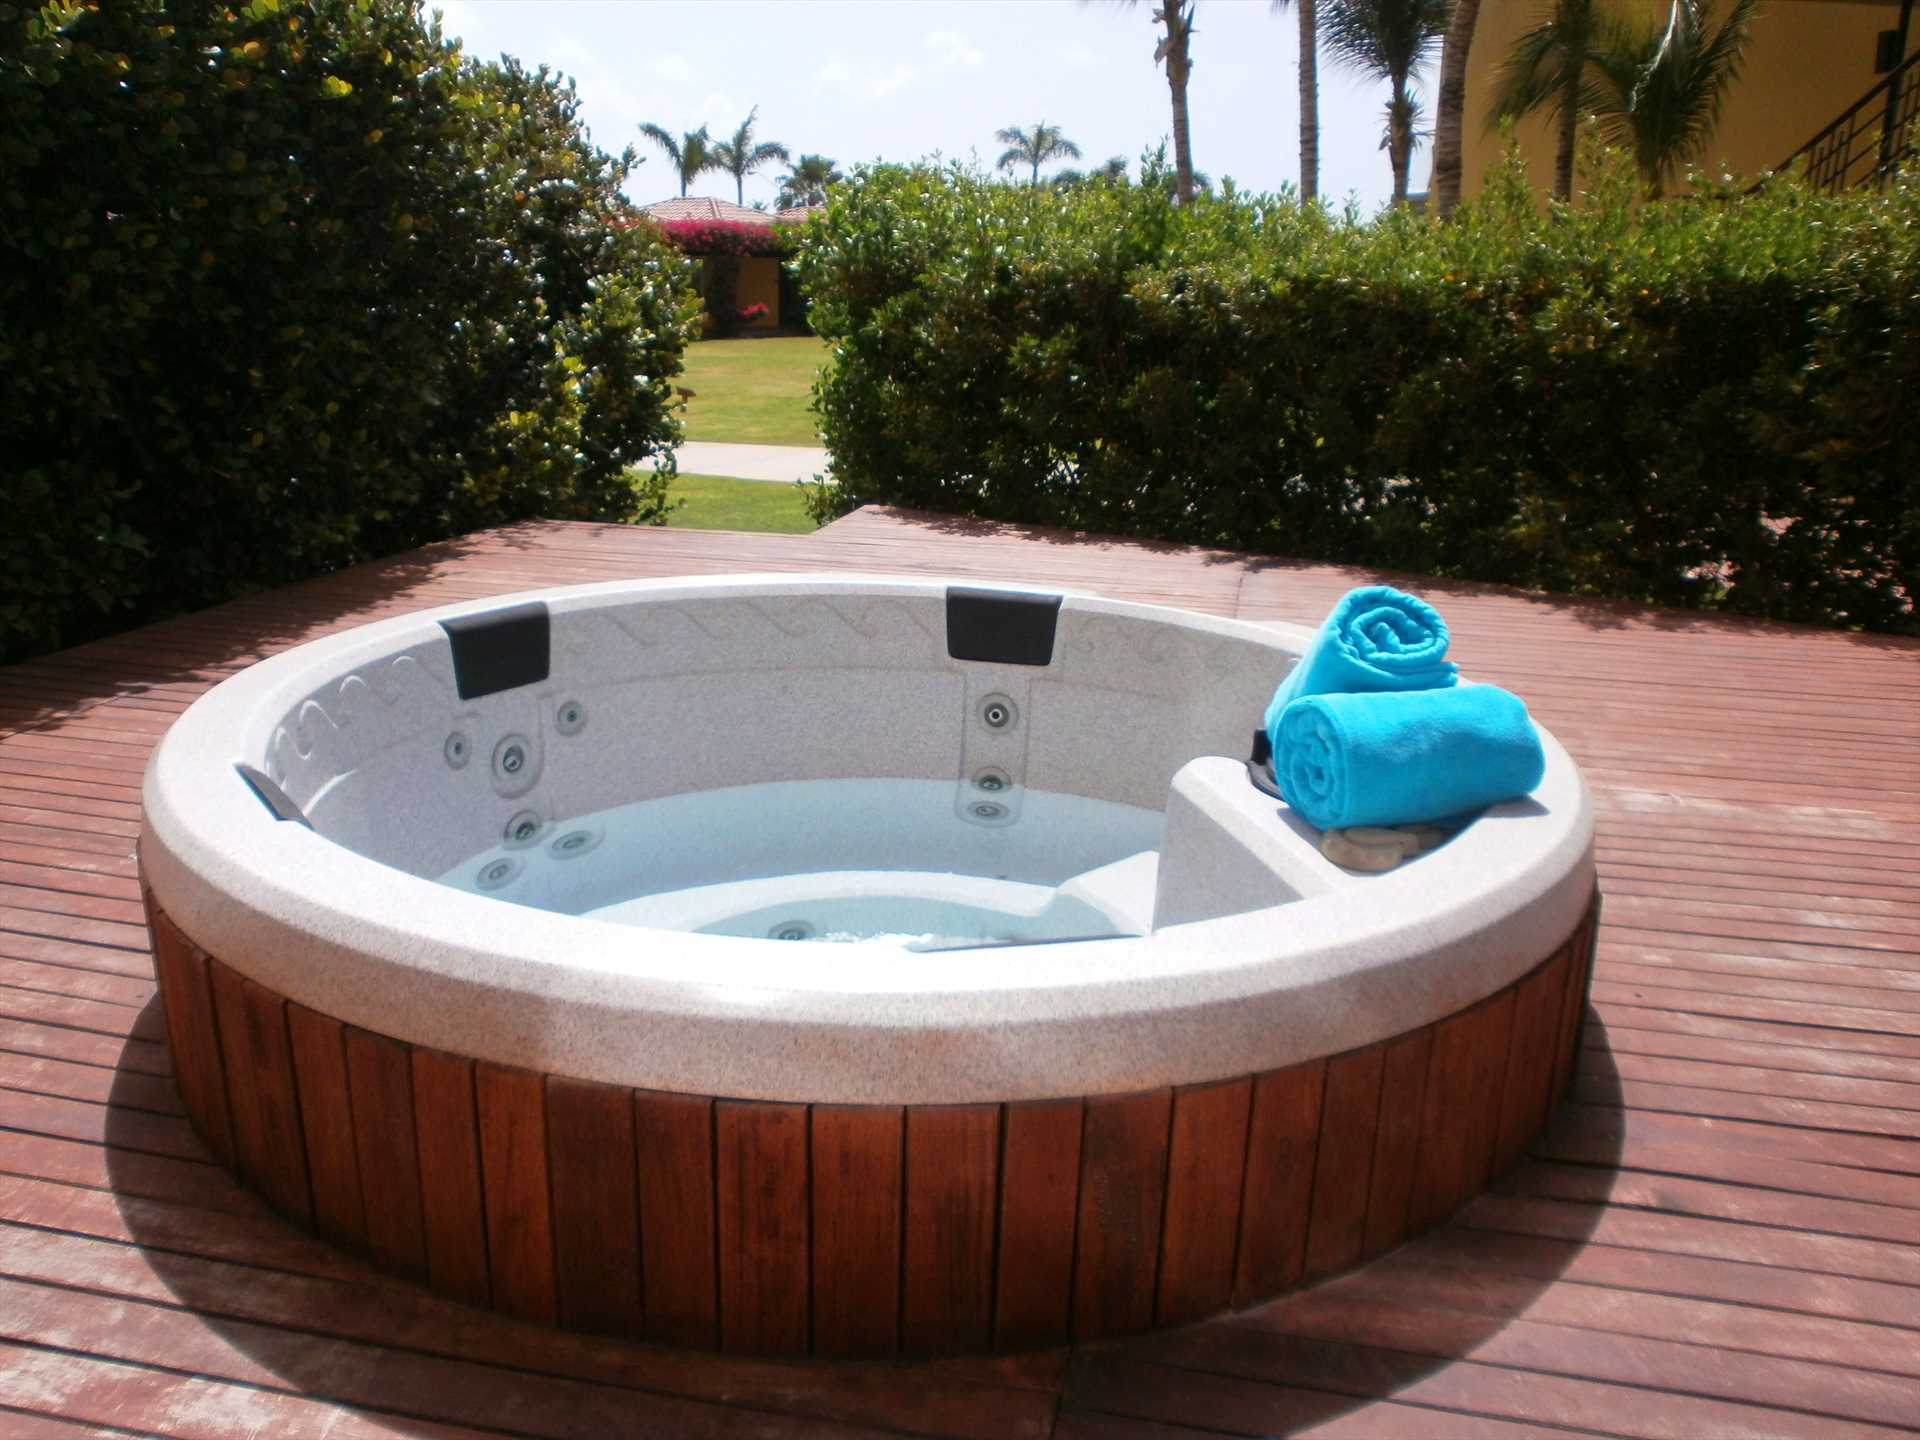 Your own private hot tub awaits you!!